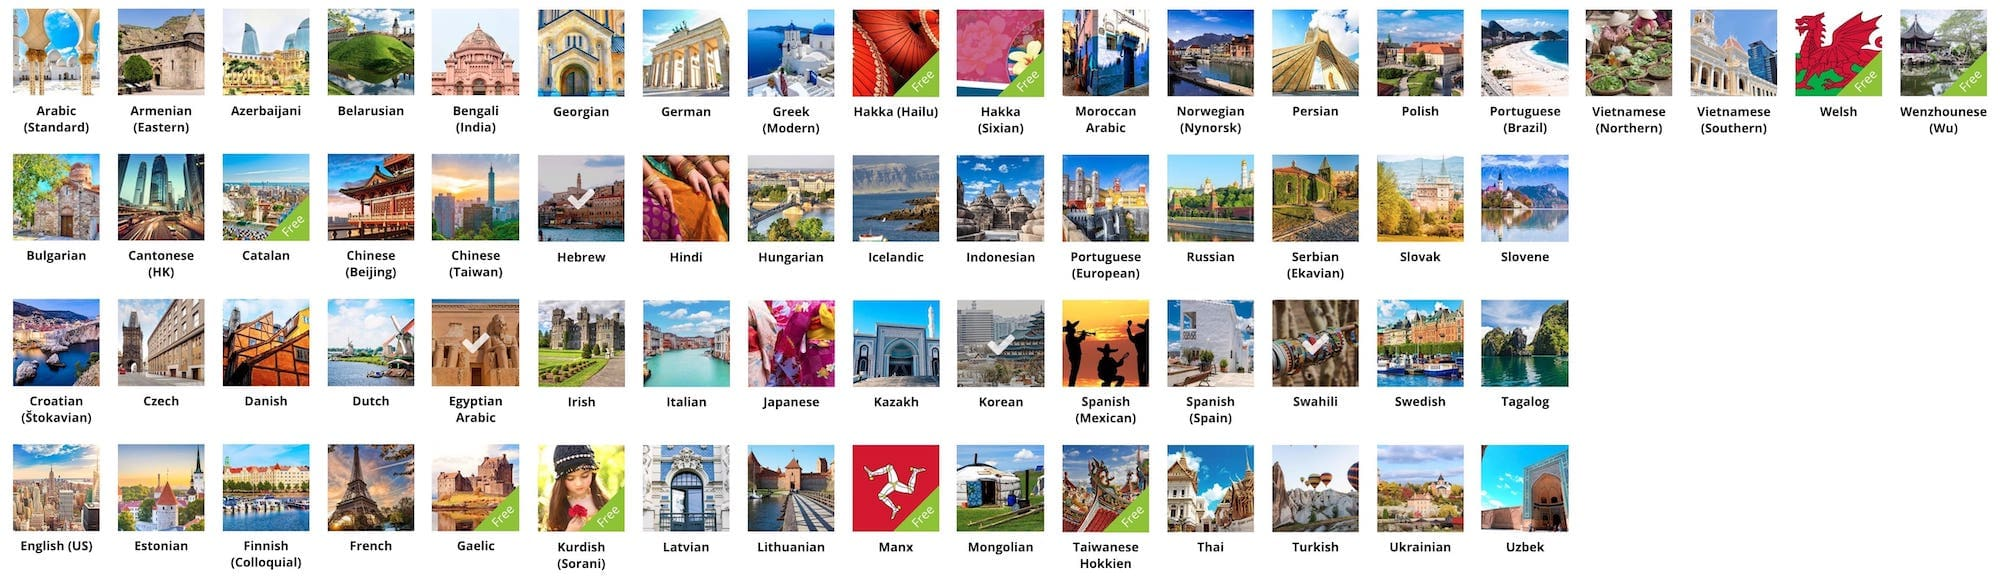 All the languages available in Glossika at 2020